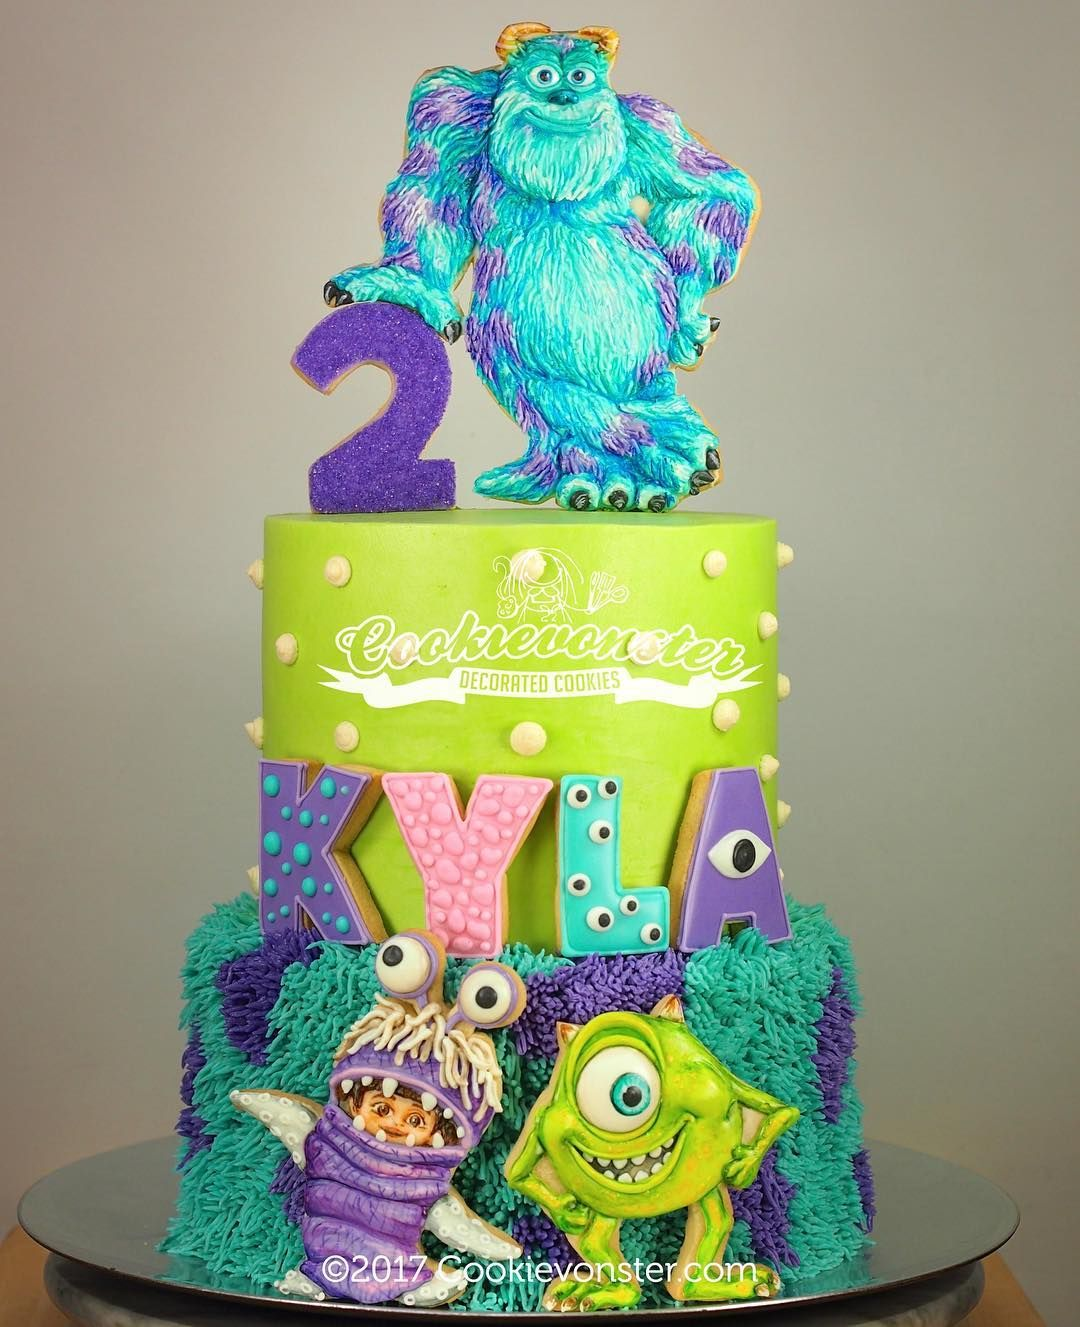 Swell Sulley Mike And Boo So Fun Monsterinc Personalised Birthday Cards Sponlily Jamesorg